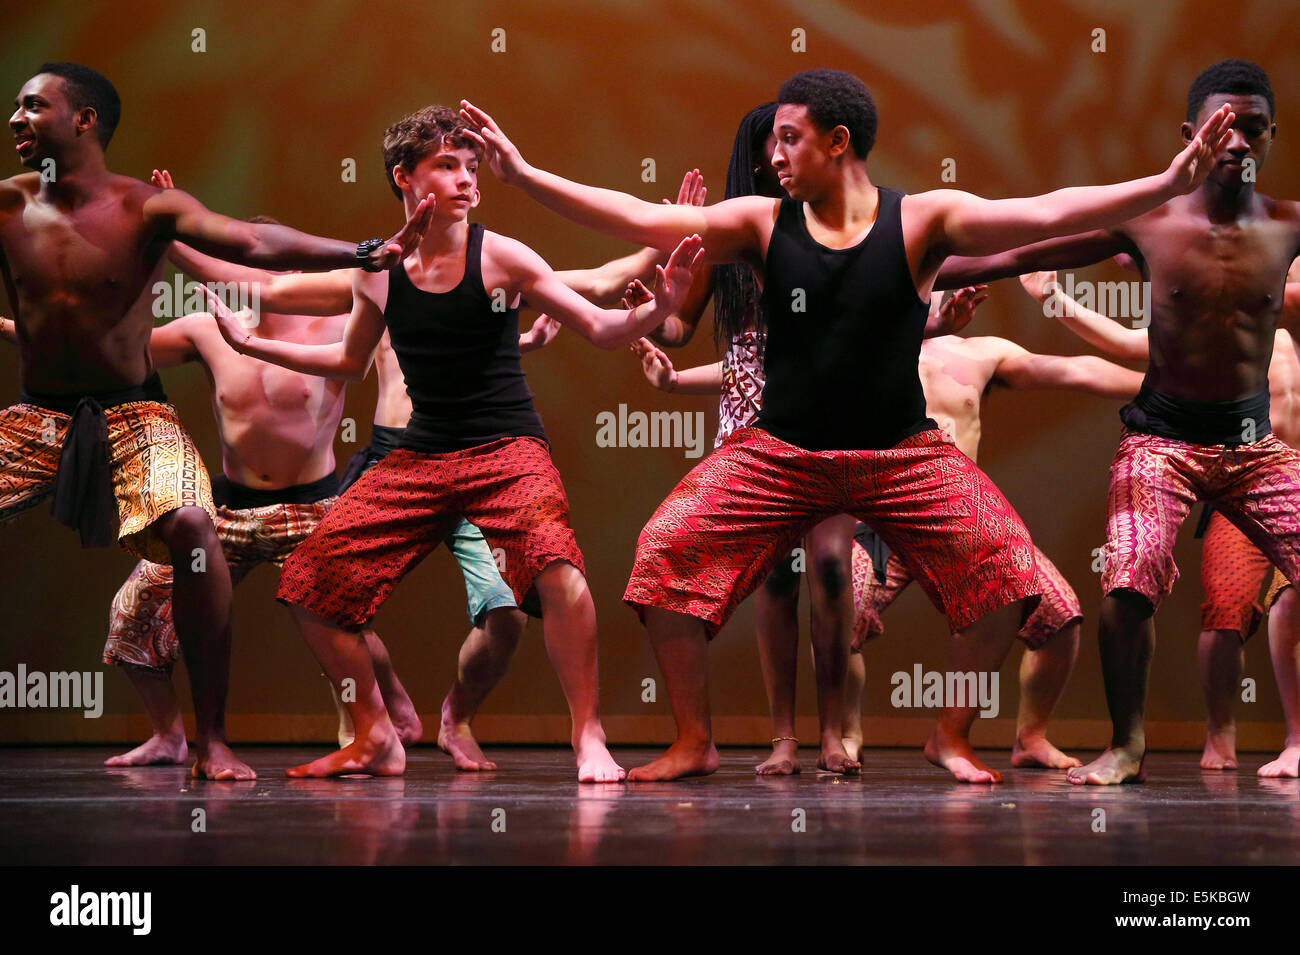 High school student theater dance performance - Stock Image